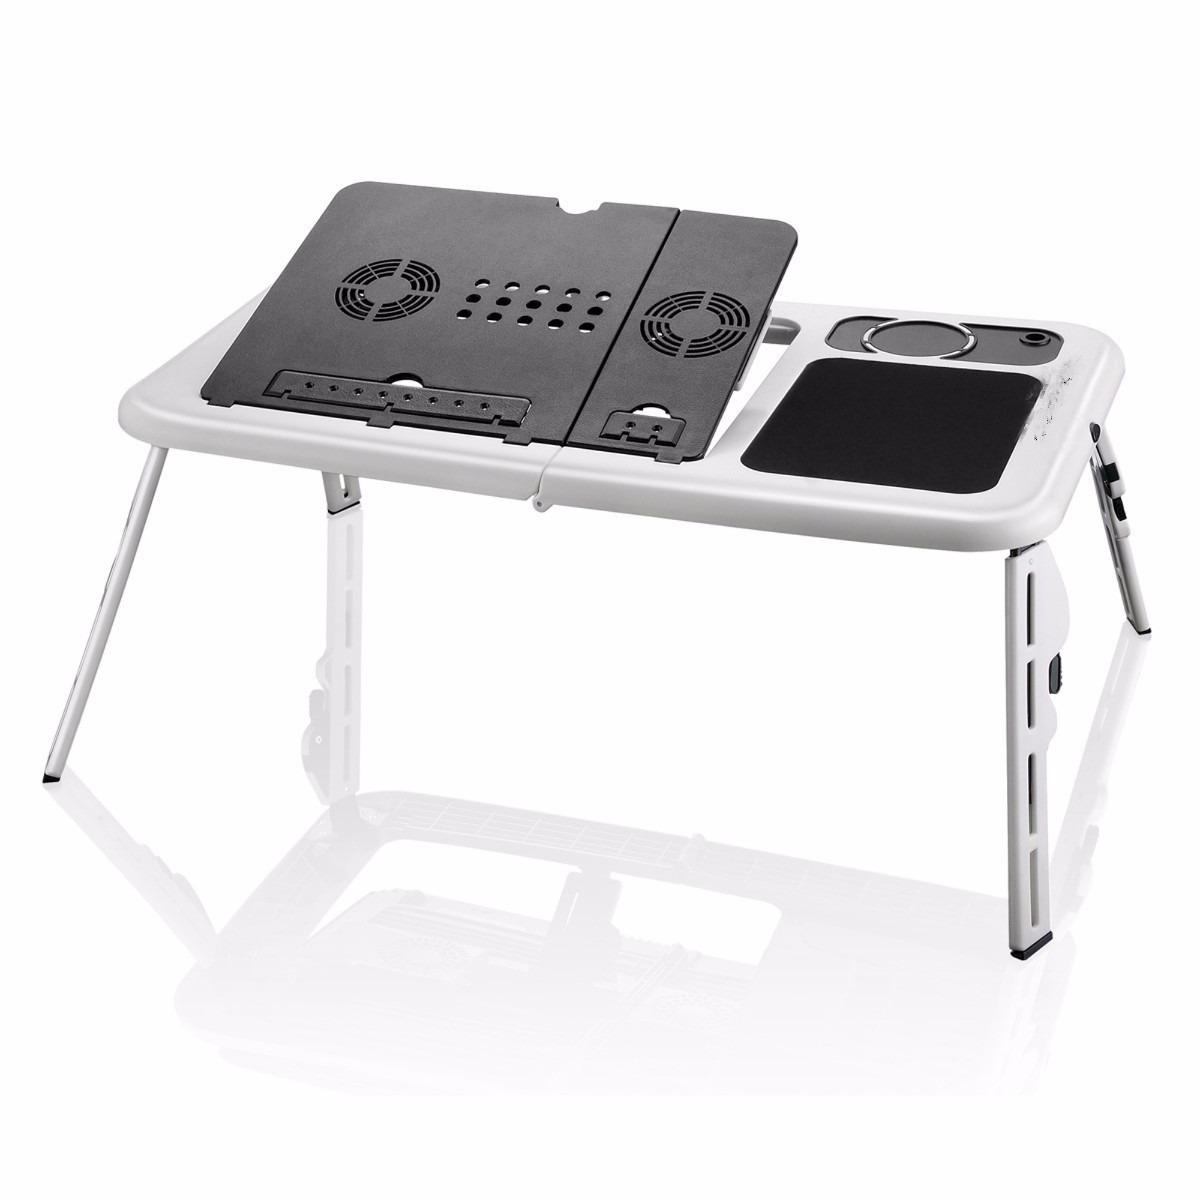 Mesa notebook table dobl vel port til suporte cooler usb pc r 49 90 no mercadolivre - Mesa de dibujo portatil ...